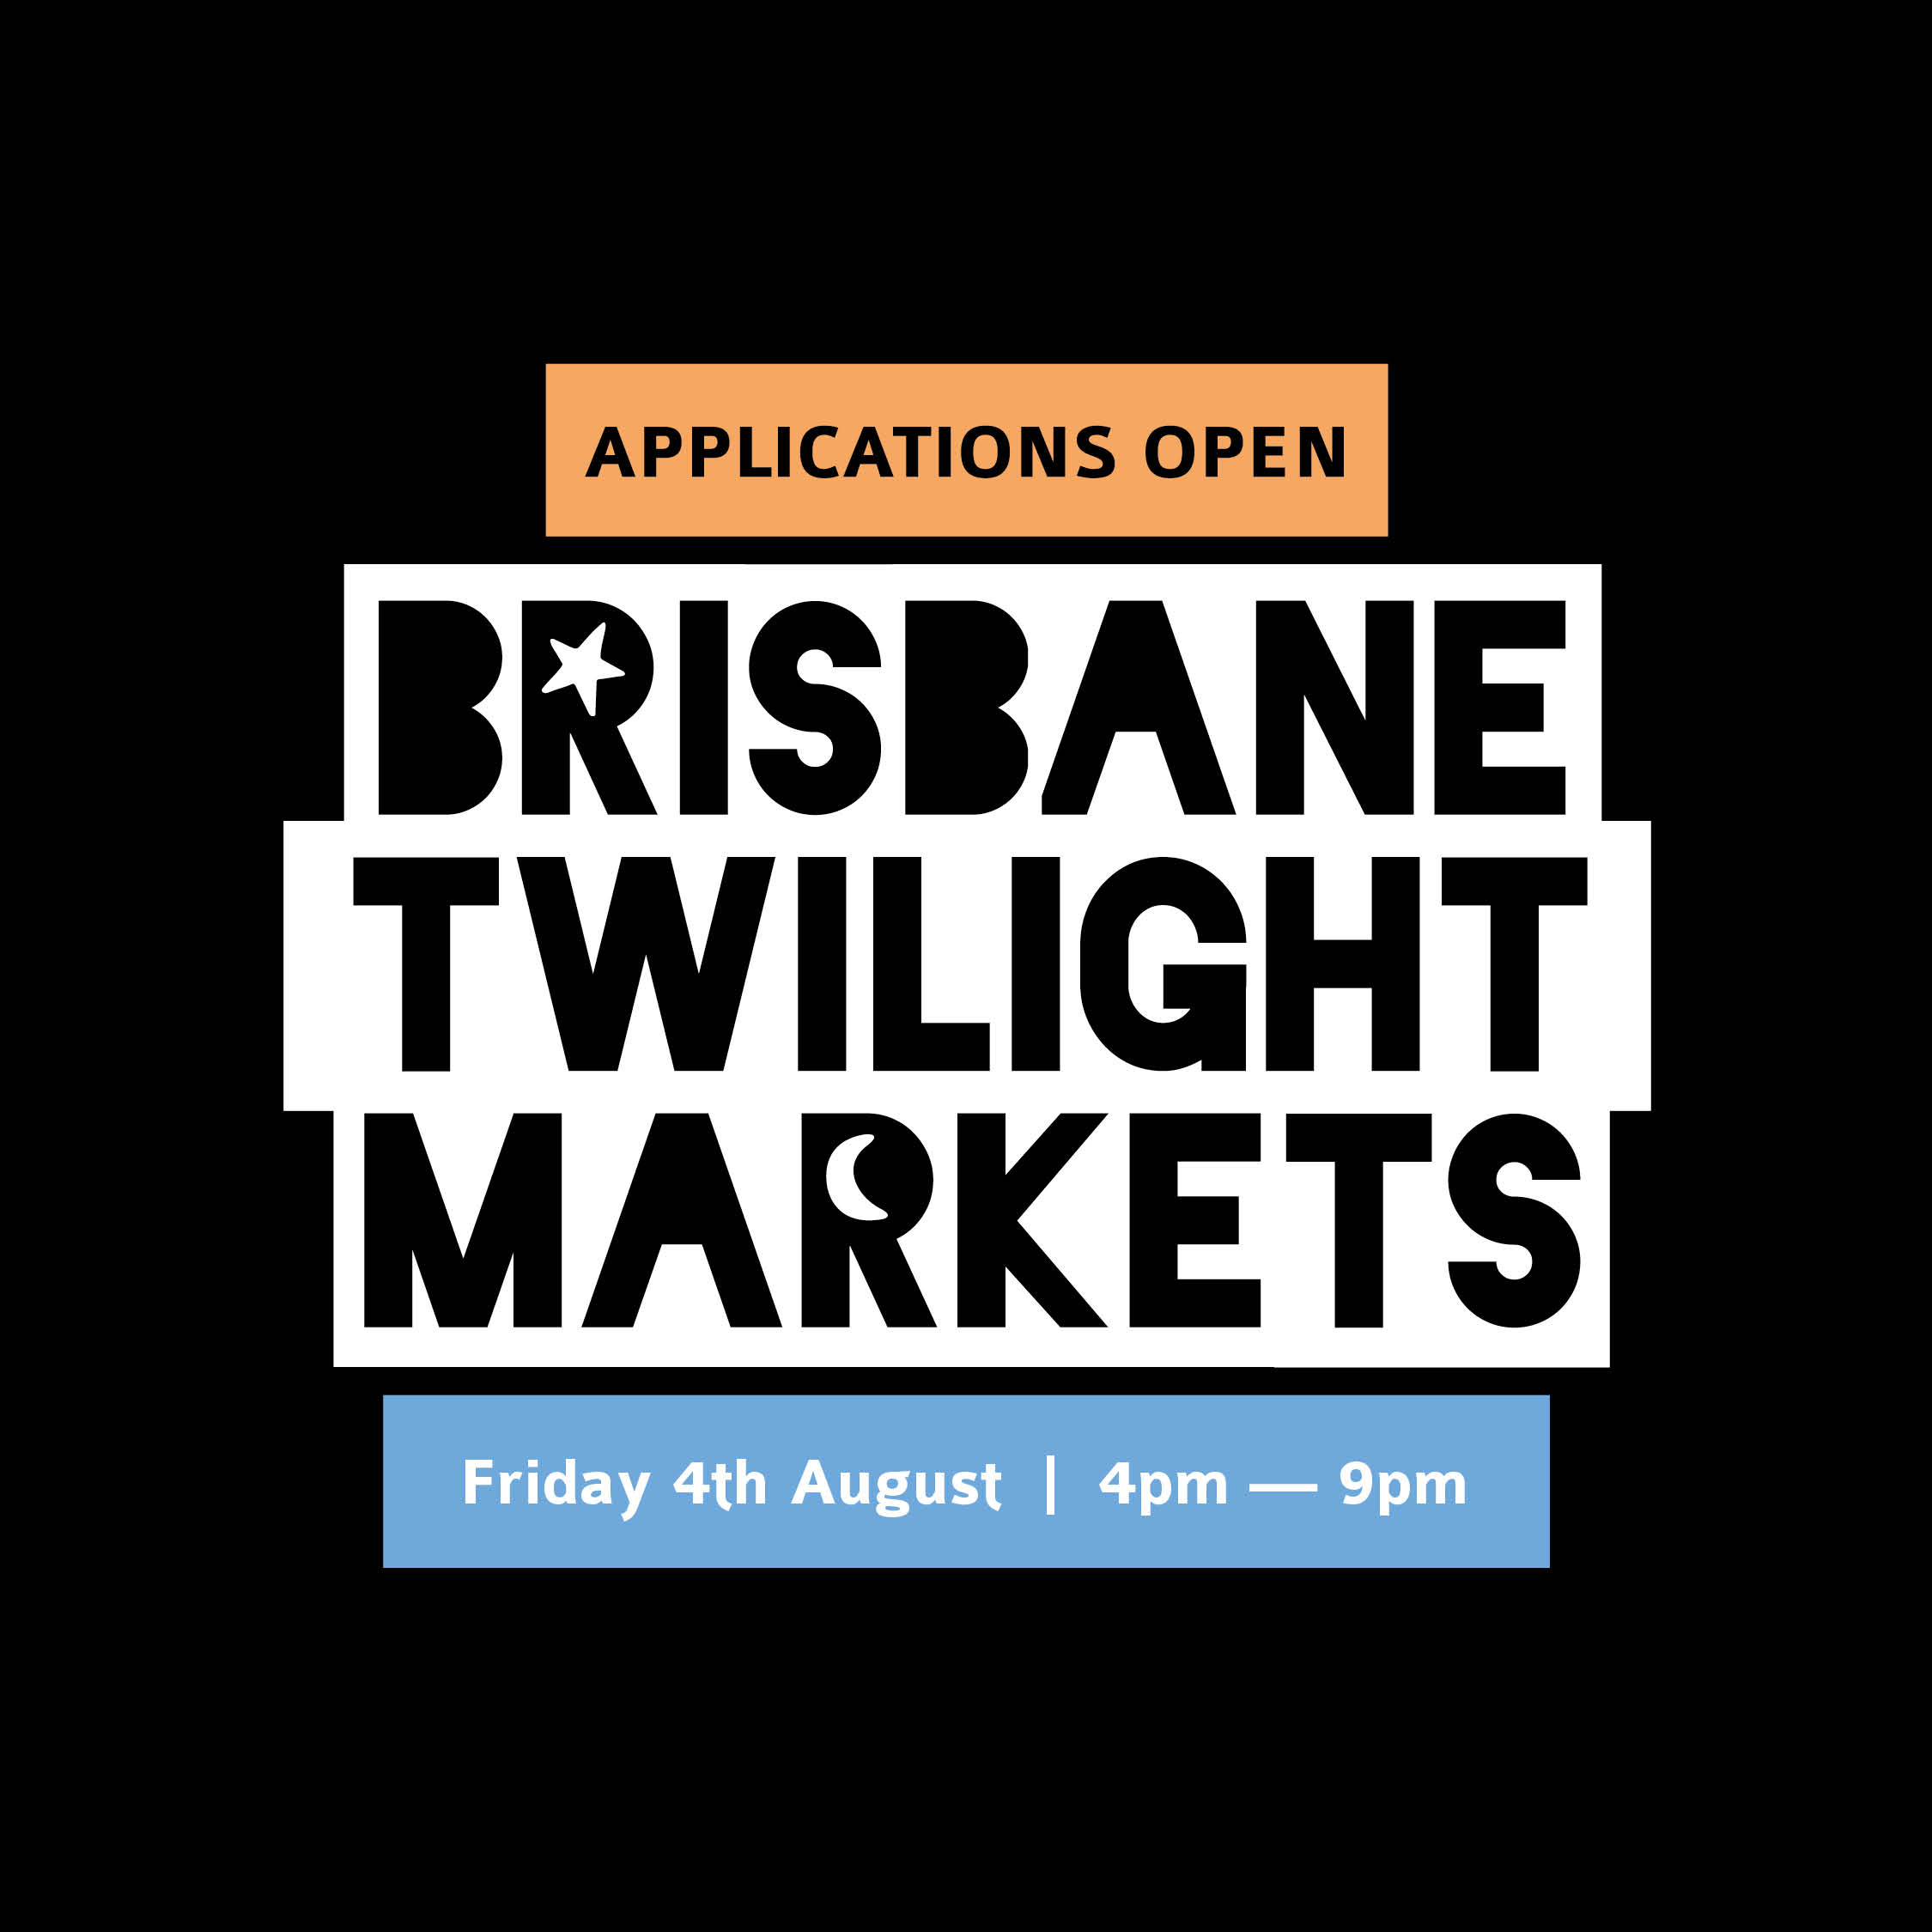 BrisStyle Twilight Market Instagram Graphics APPLICATIONS OPEN AUG